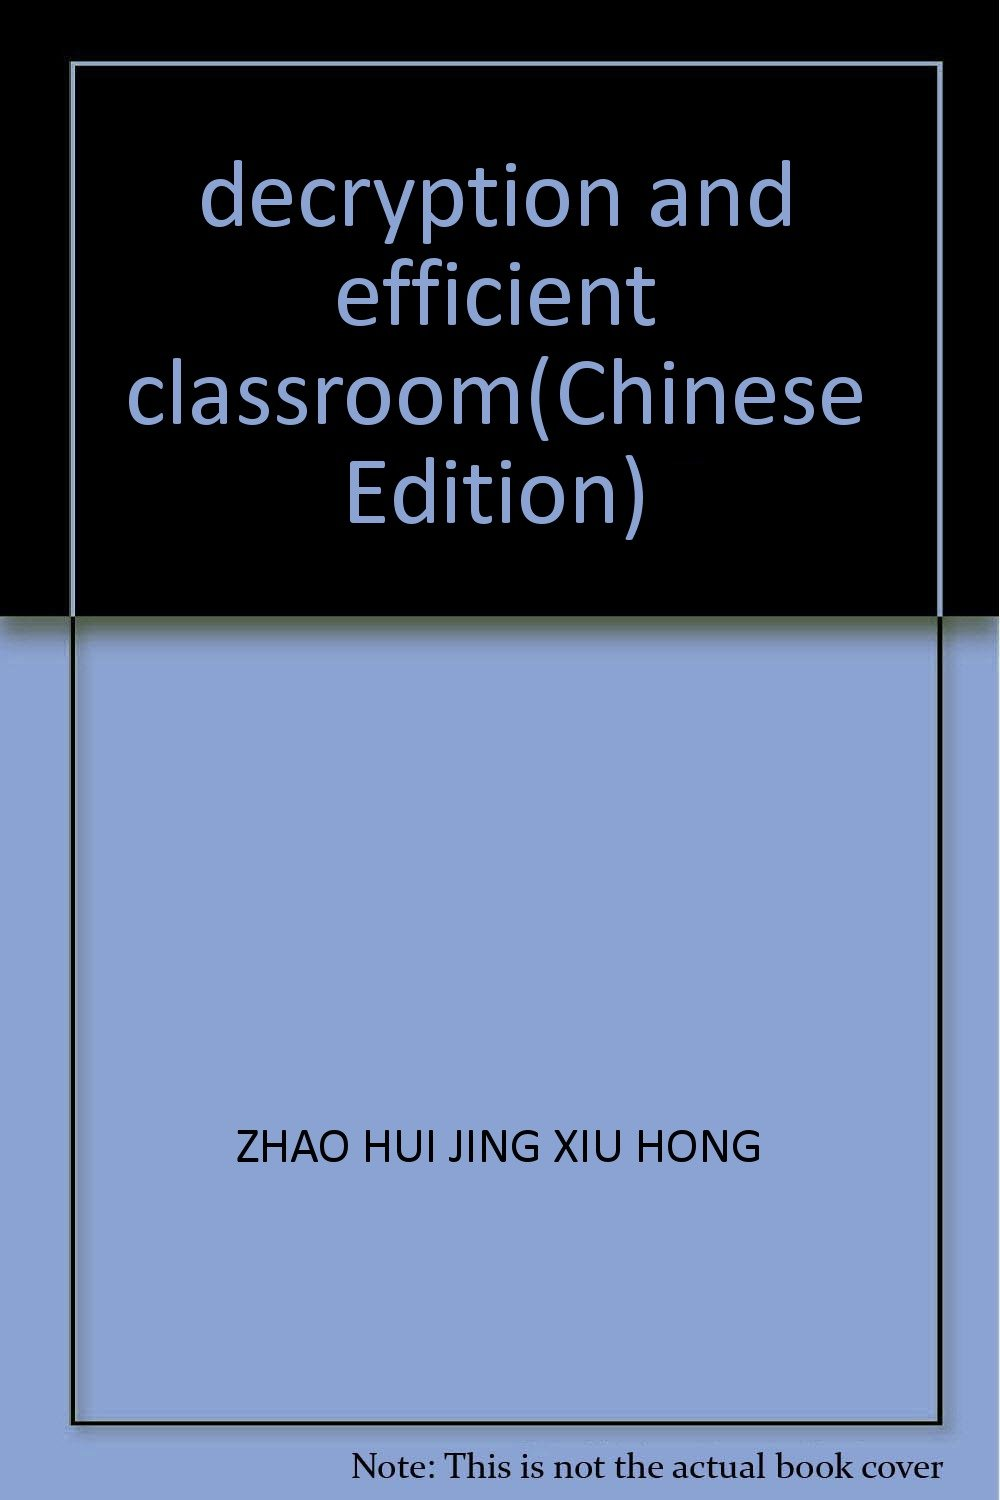 Download decryption and efficient classroom(Chinese Edition) ebook